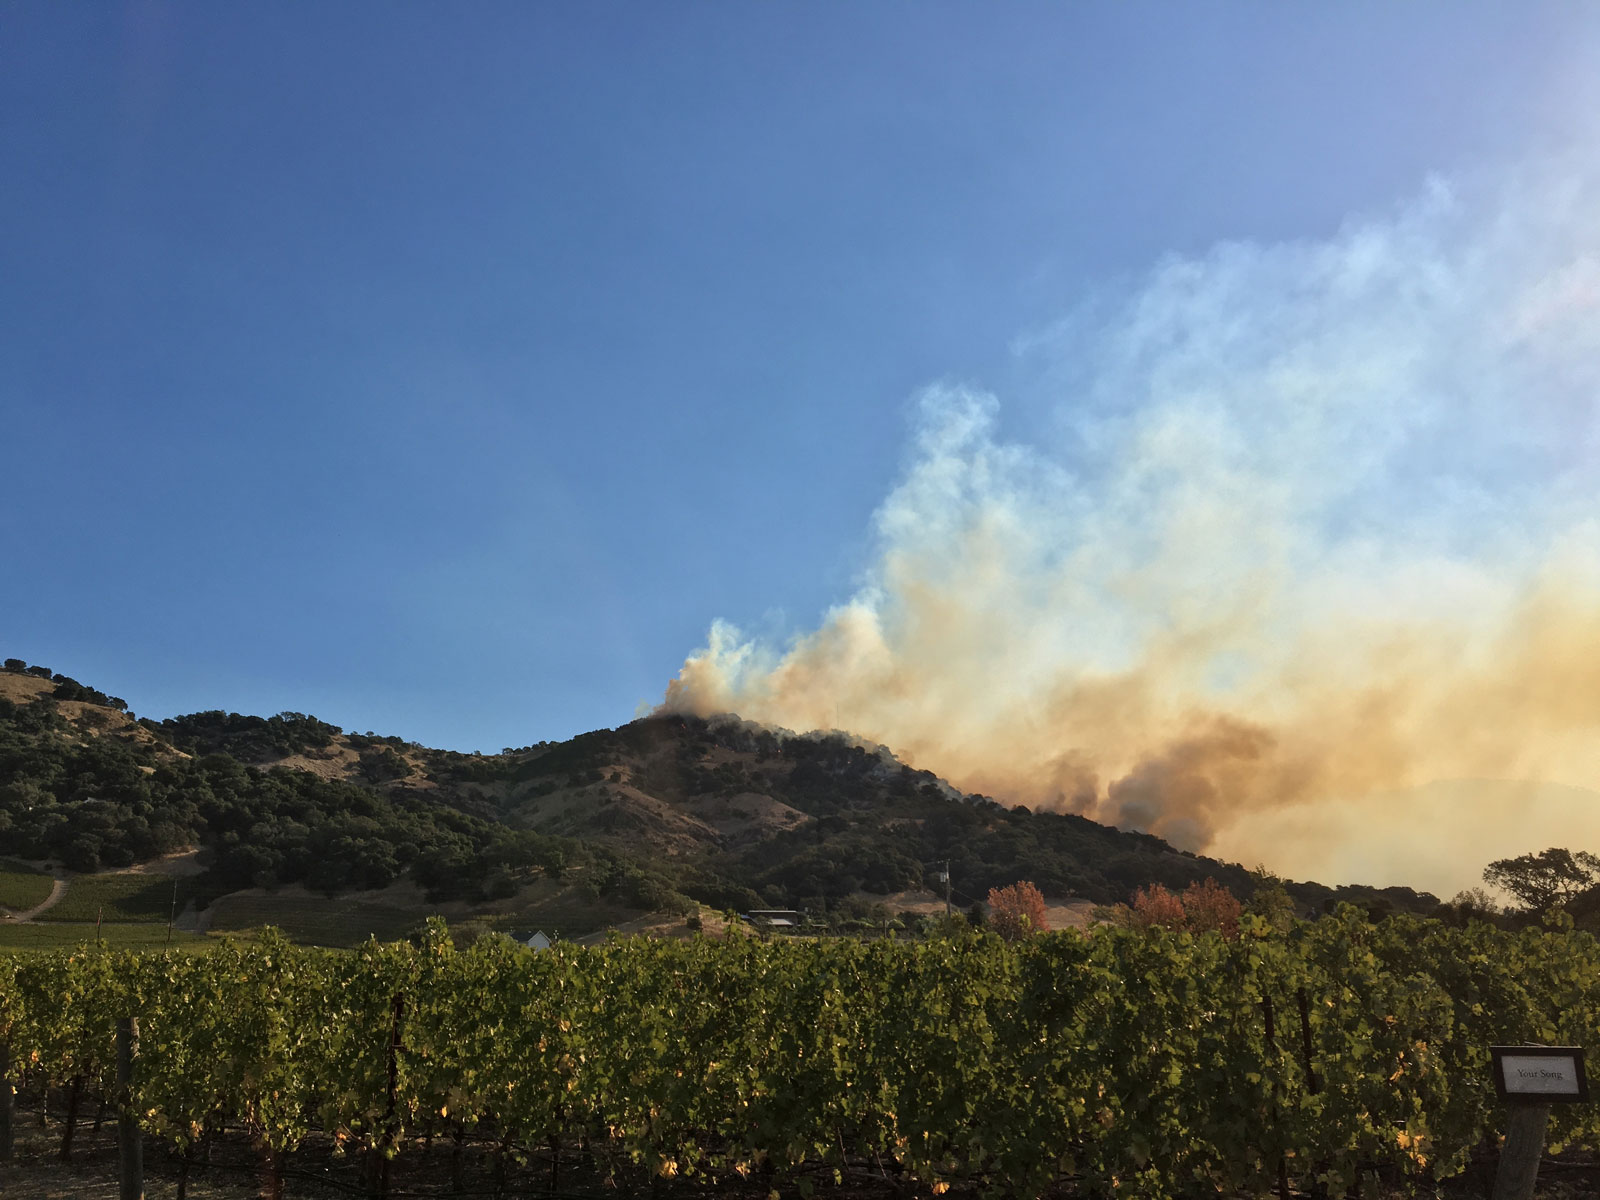 Amid Tragedy in California's Wine Country, There's Some Cause for Hope